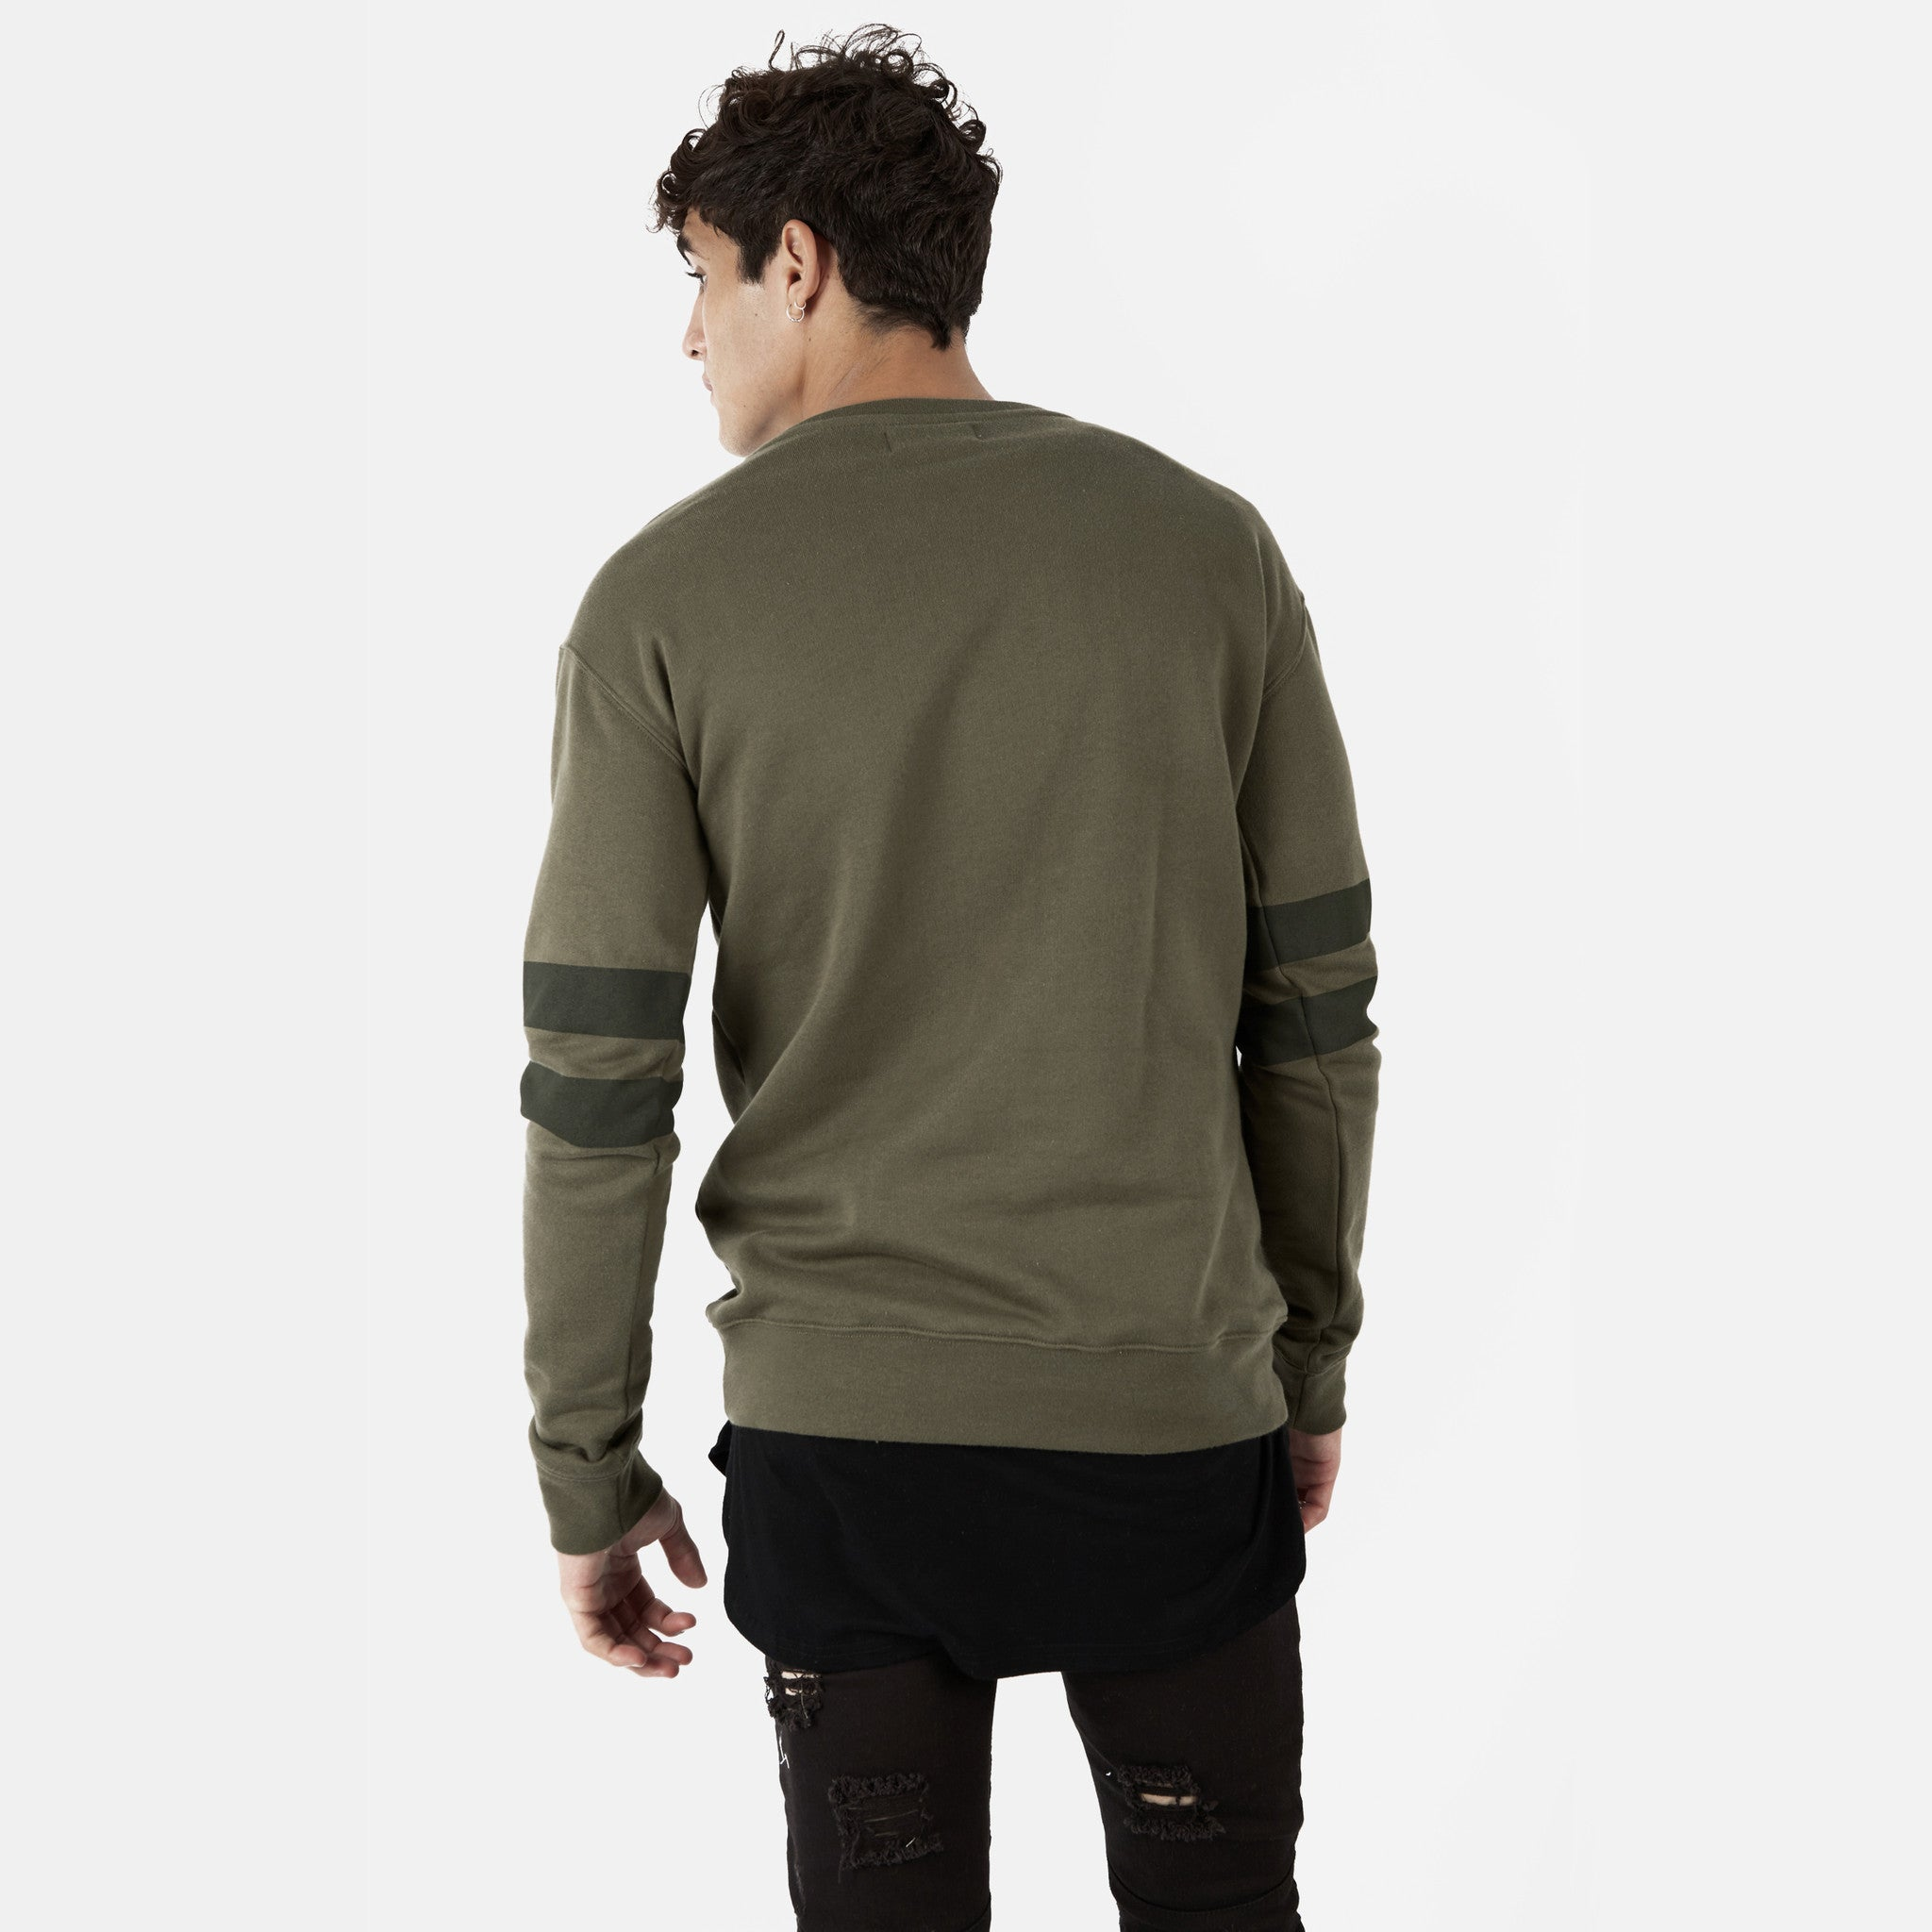 SW400 Tonal Print Sweatshirt - Khaki - underated london - underatedco - 5